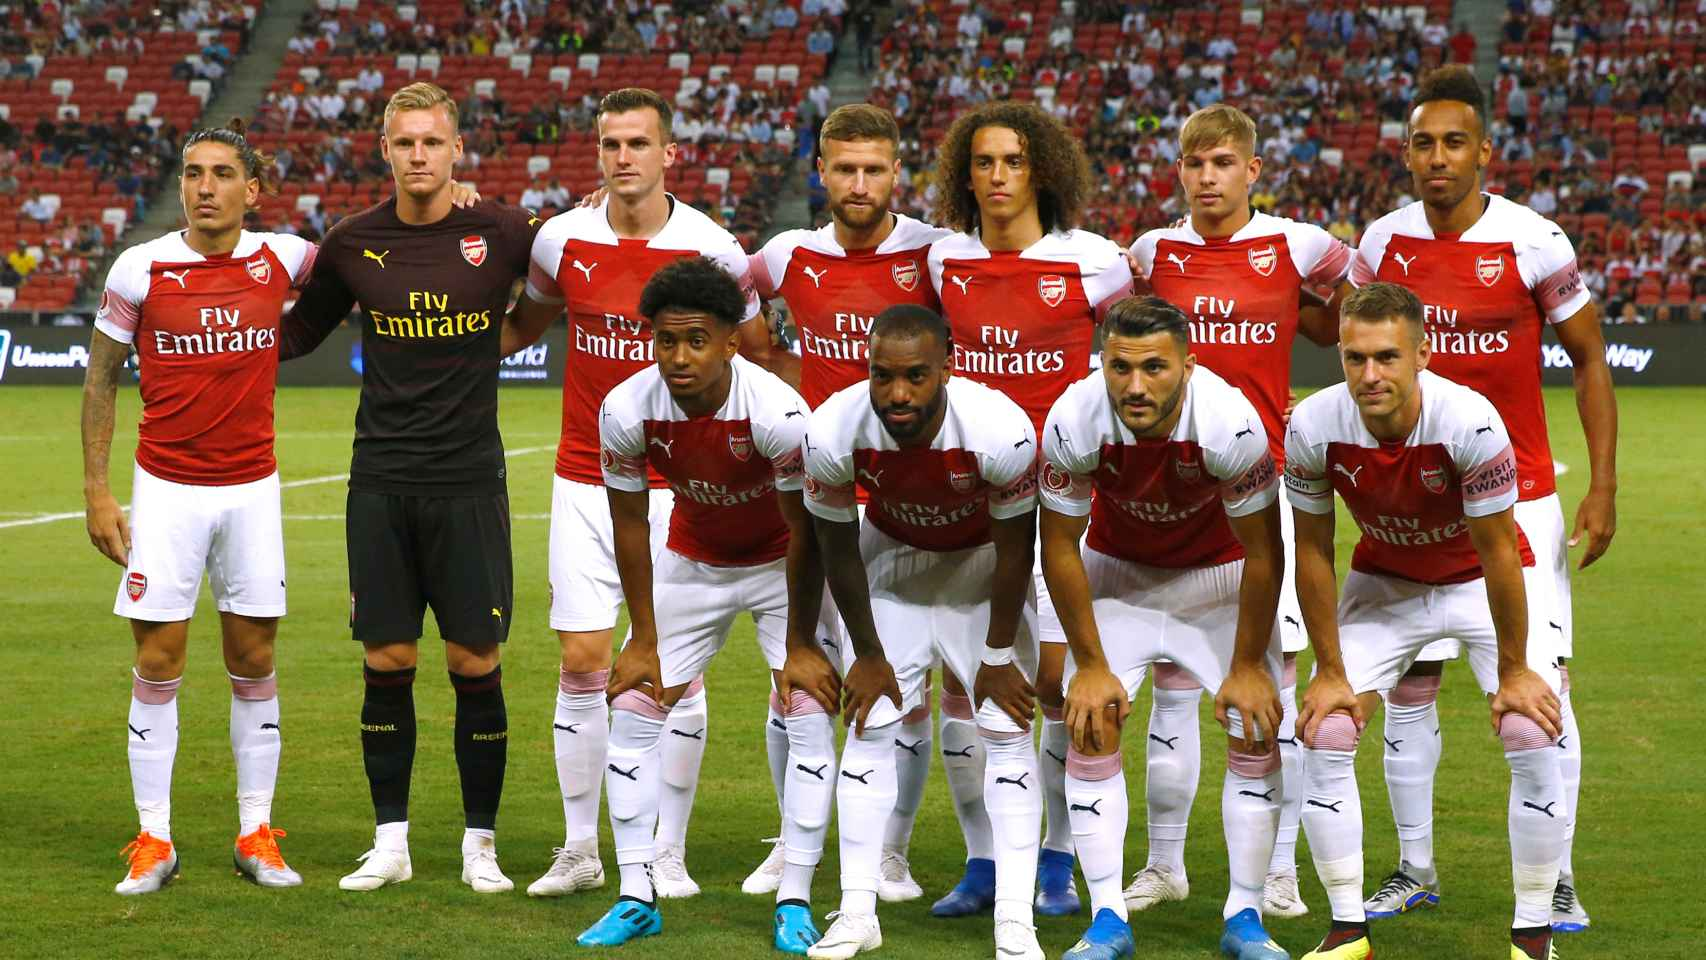 International Champions Cup: Atlético de Madrid 1-1 Arsenal